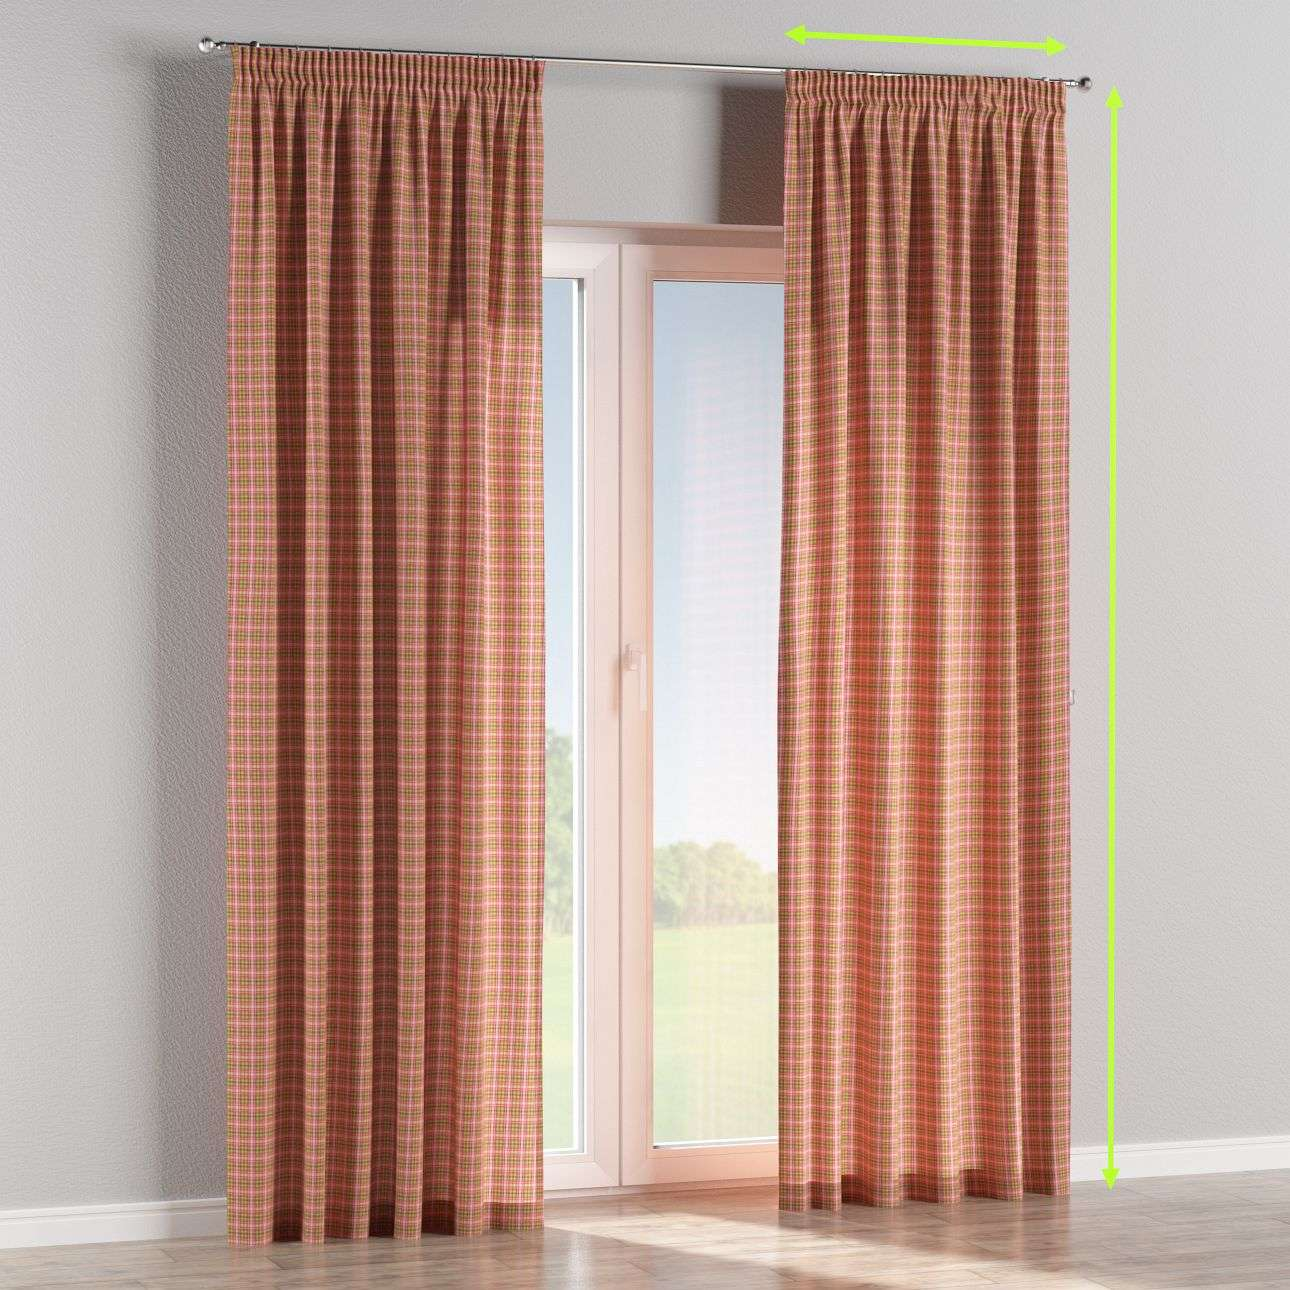 Pencil pleat lined curtains in collection Bristol, fabric: 126-25